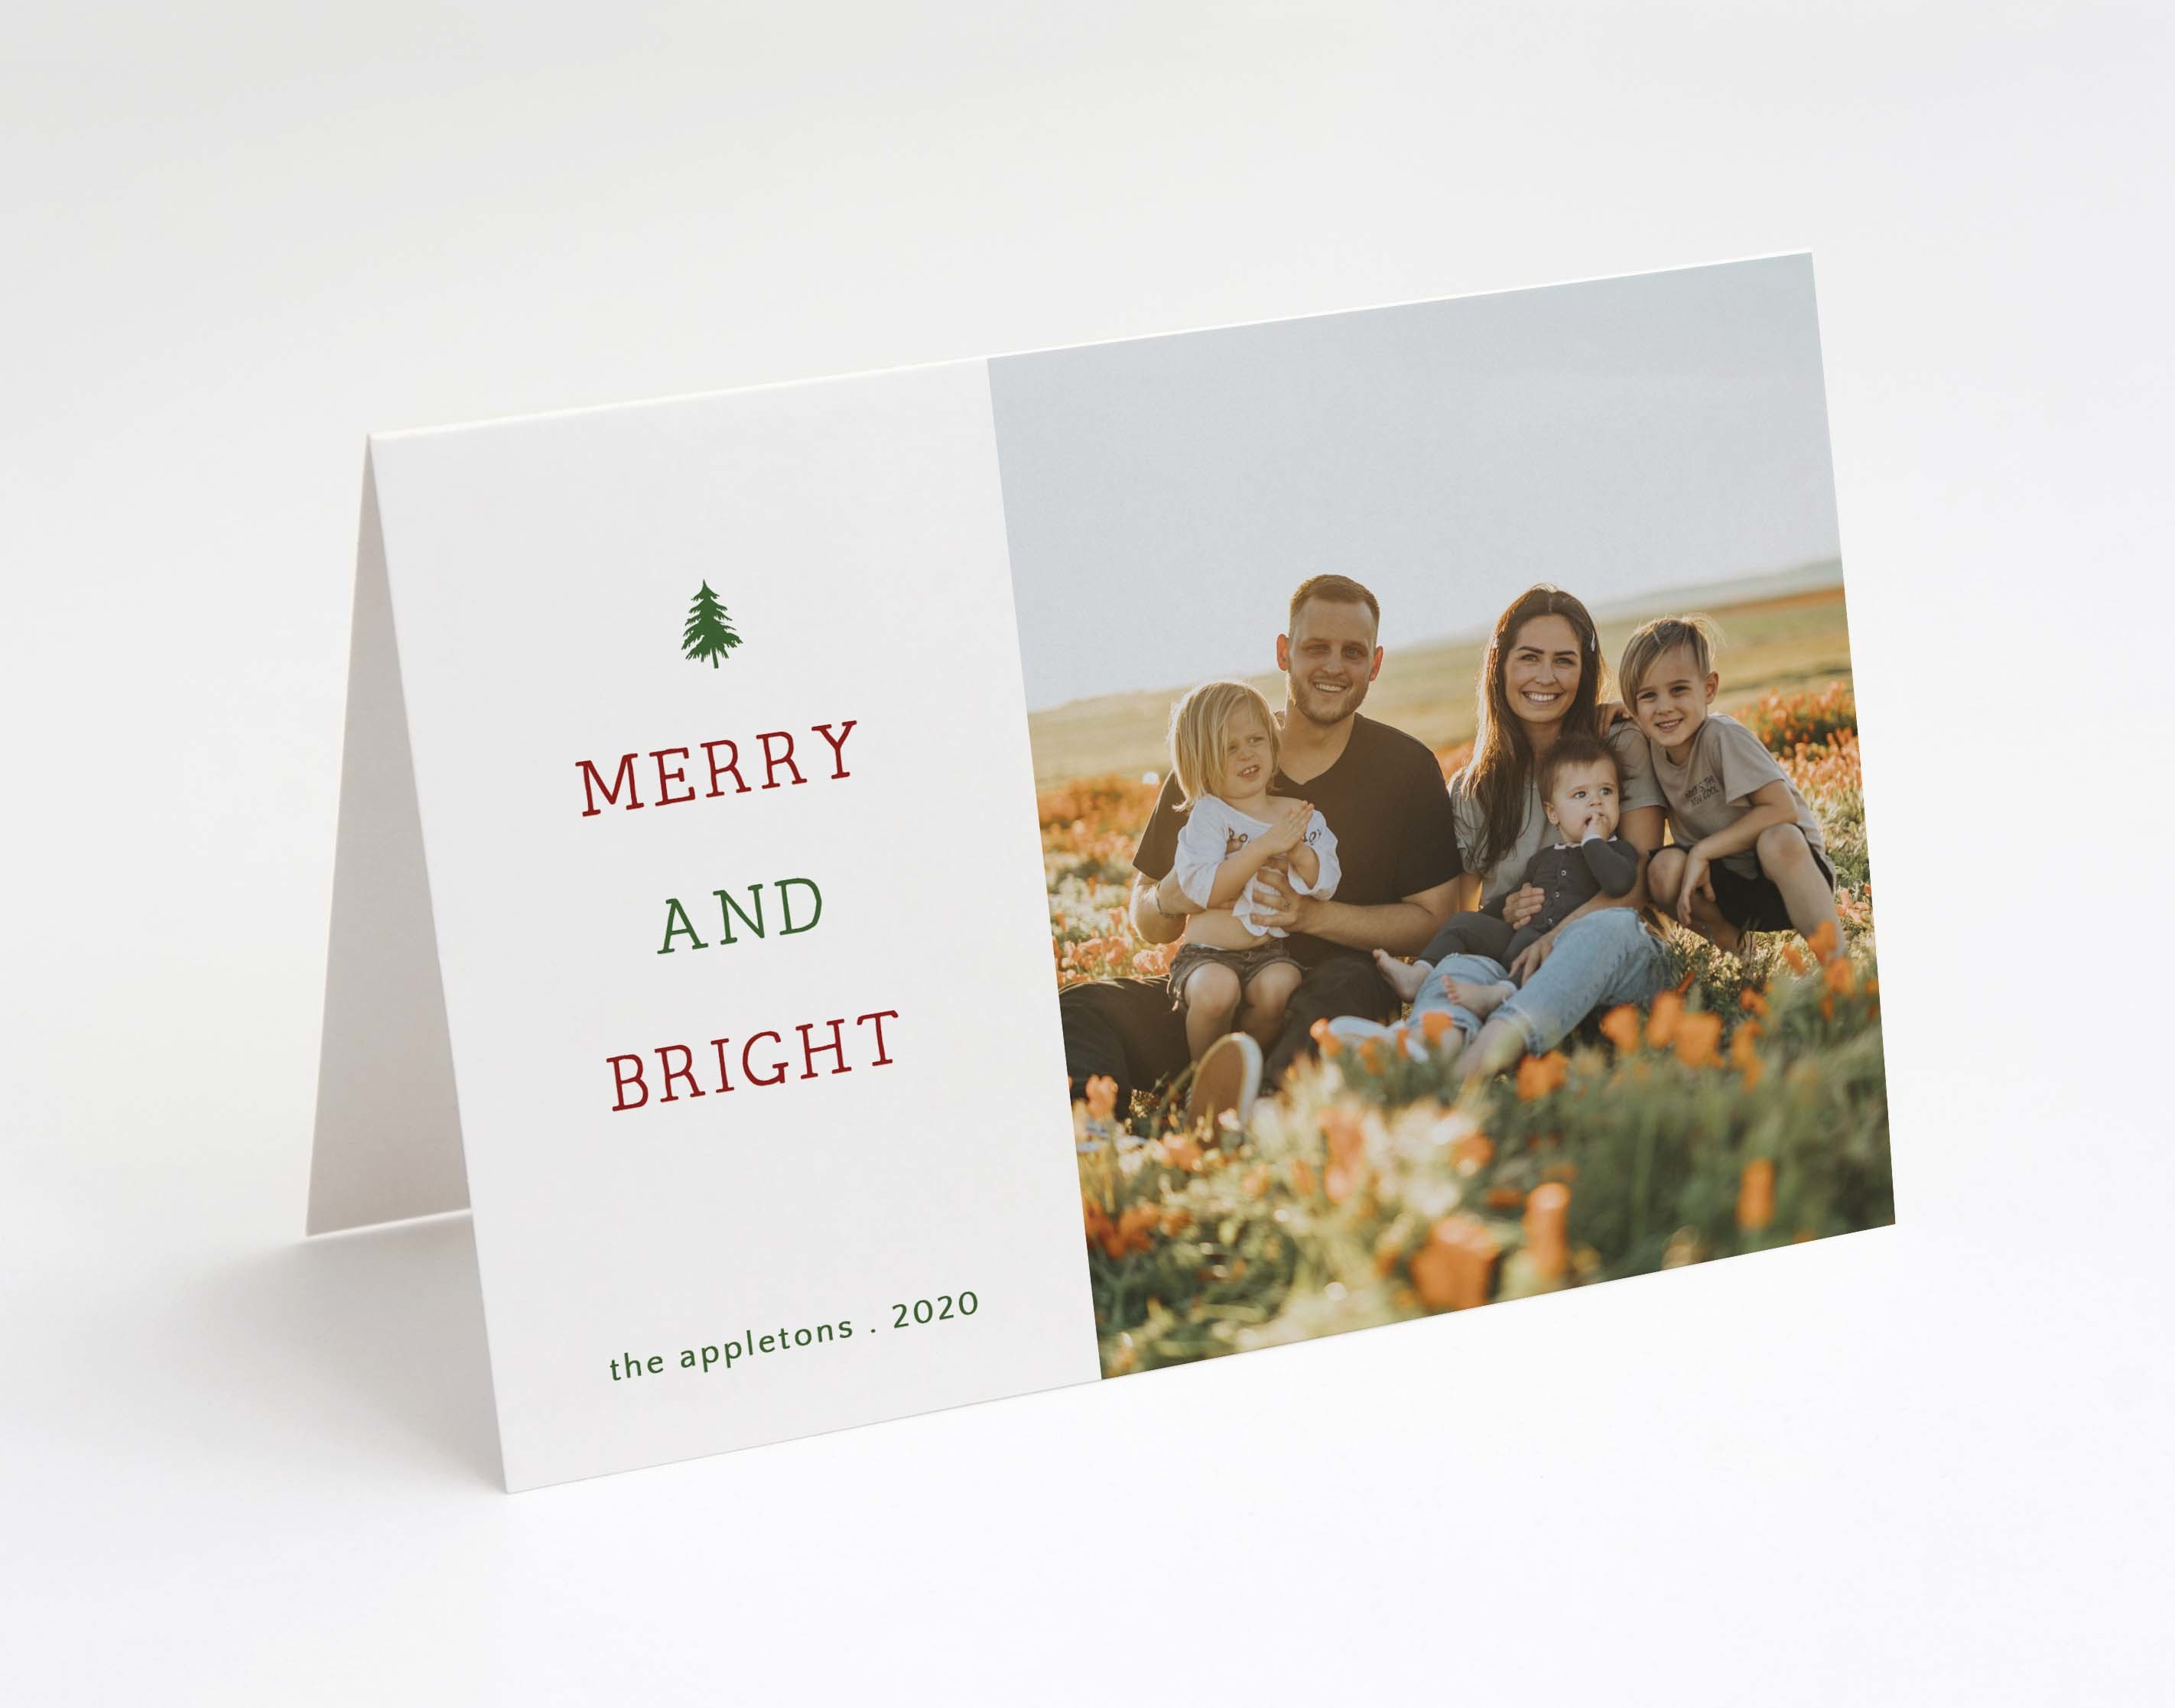 Merriest Holiday Card